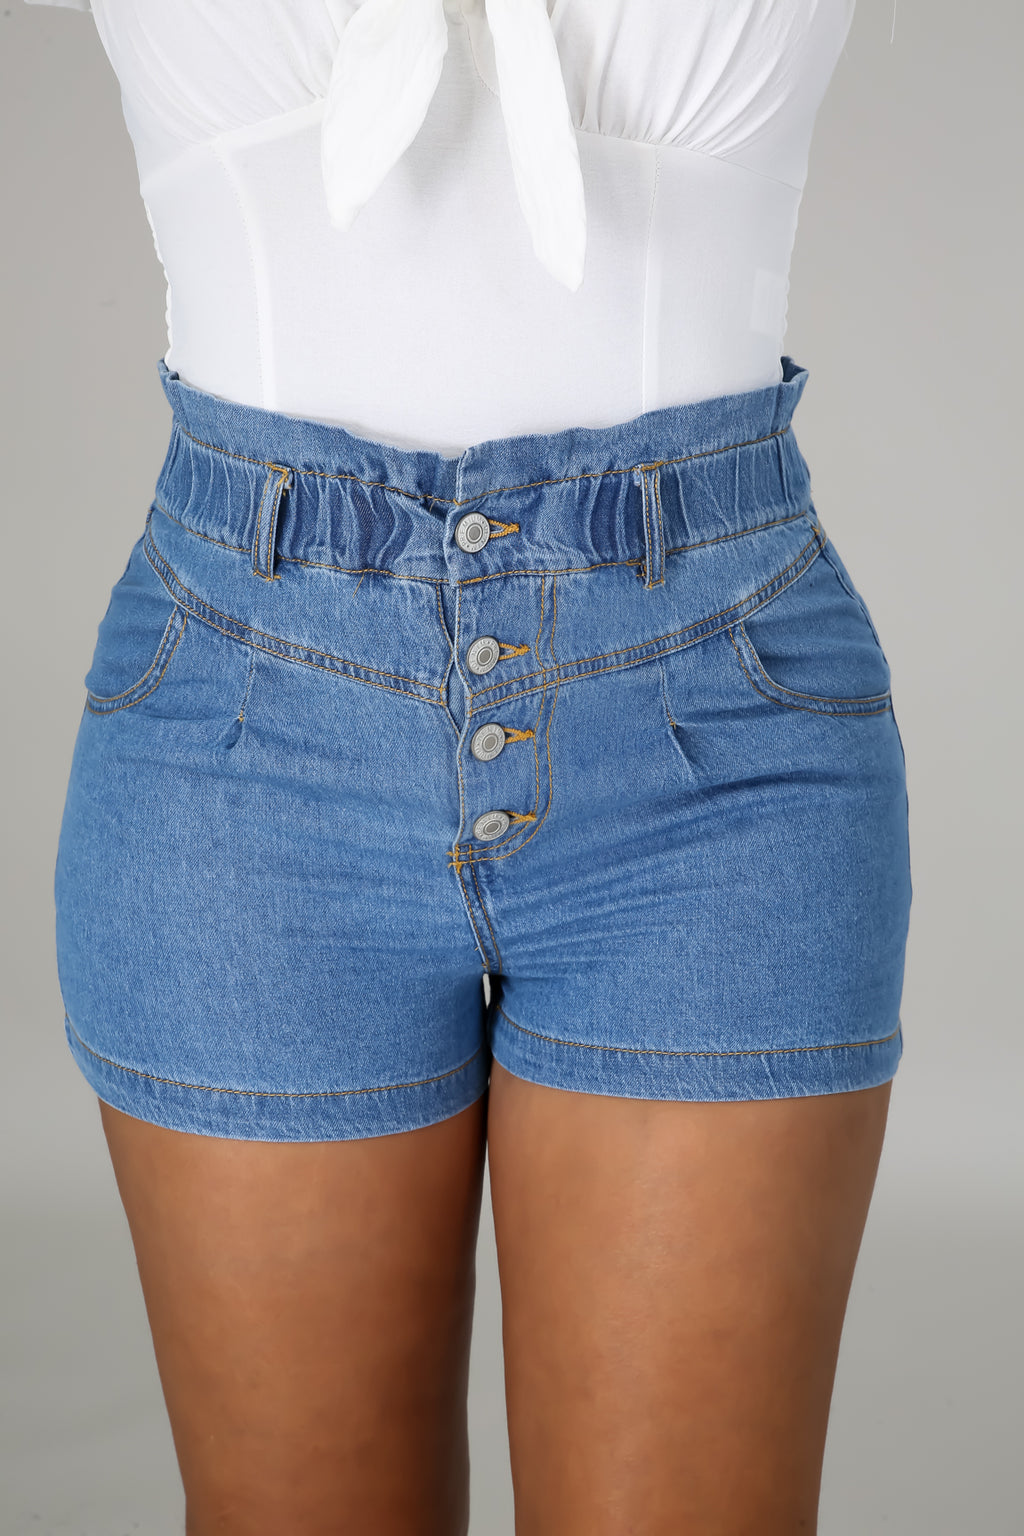 Much Needed Denim Shorts